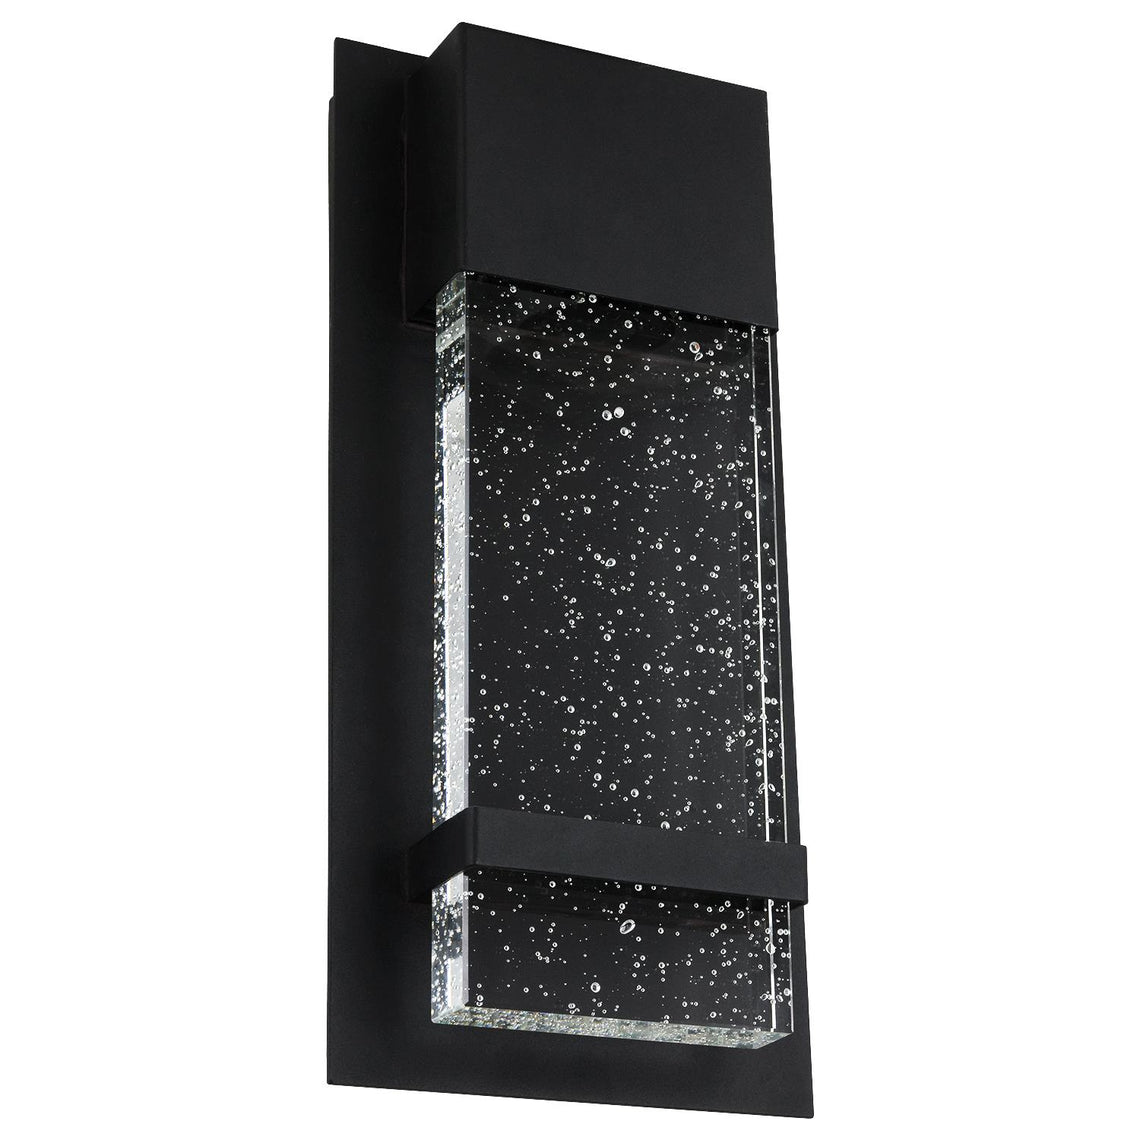 Wattall Sconce With Rain Glass Panel, 13.75